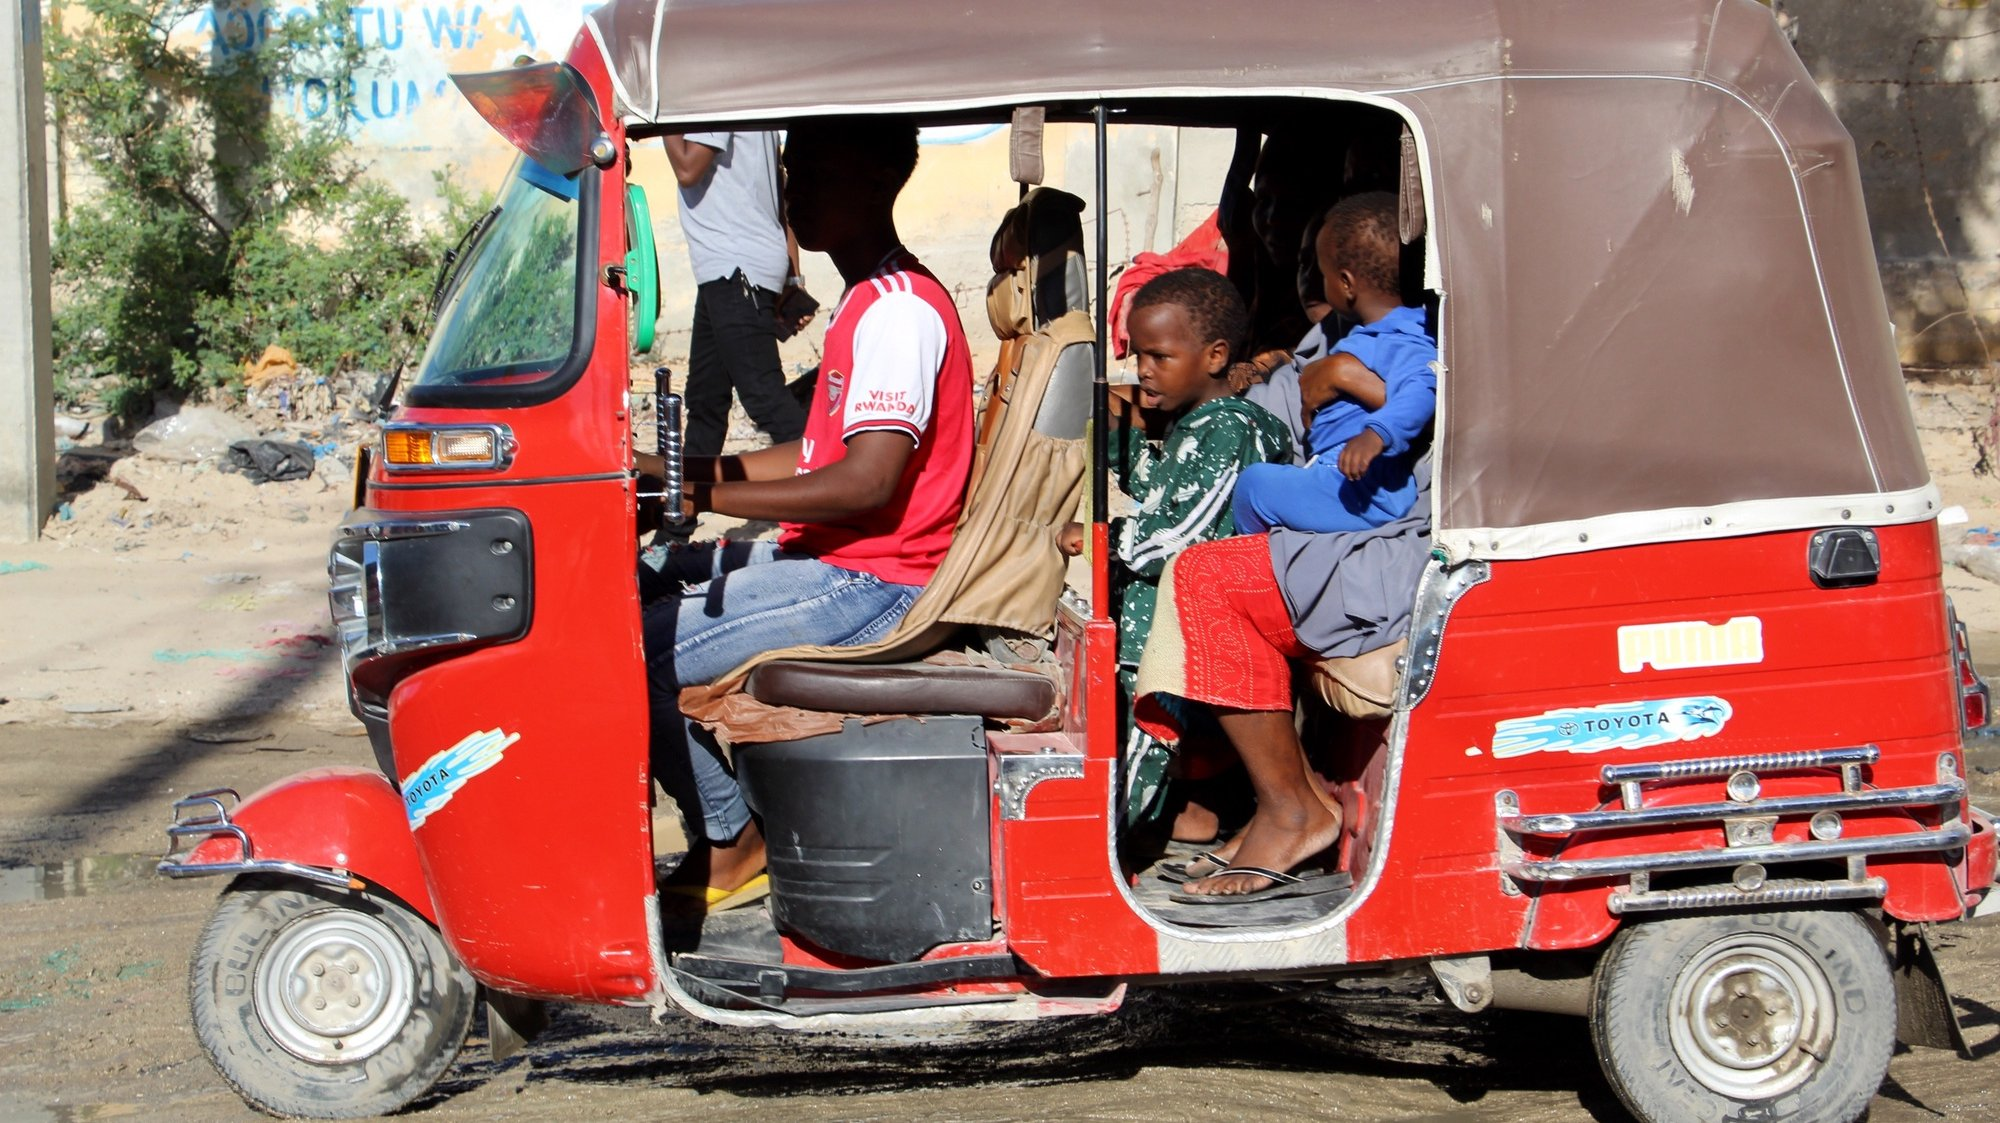 epa09163678 A Somali family preapres to leave in a rickshaw, following clashes between pro Government and oppositon forces, in Mogadishu, Somalia, 27 April 2021. Residents of Mogadishu's northern parts were seen fleeing the area on 27 April fearing more violence, after the clashes of 25 April, where forces loyal to commander Saney Abdulle, a break away military faction, engaged Somali government soldiers. There has been growing opposition to Somalia's term extension by Somali lawmakers in Federal government. The African Union has also voiced its concern over Somalia's lower house of parliament voting to extend the mandate of President Farmaajo.  EPA/SAID YUSUF WARSAME